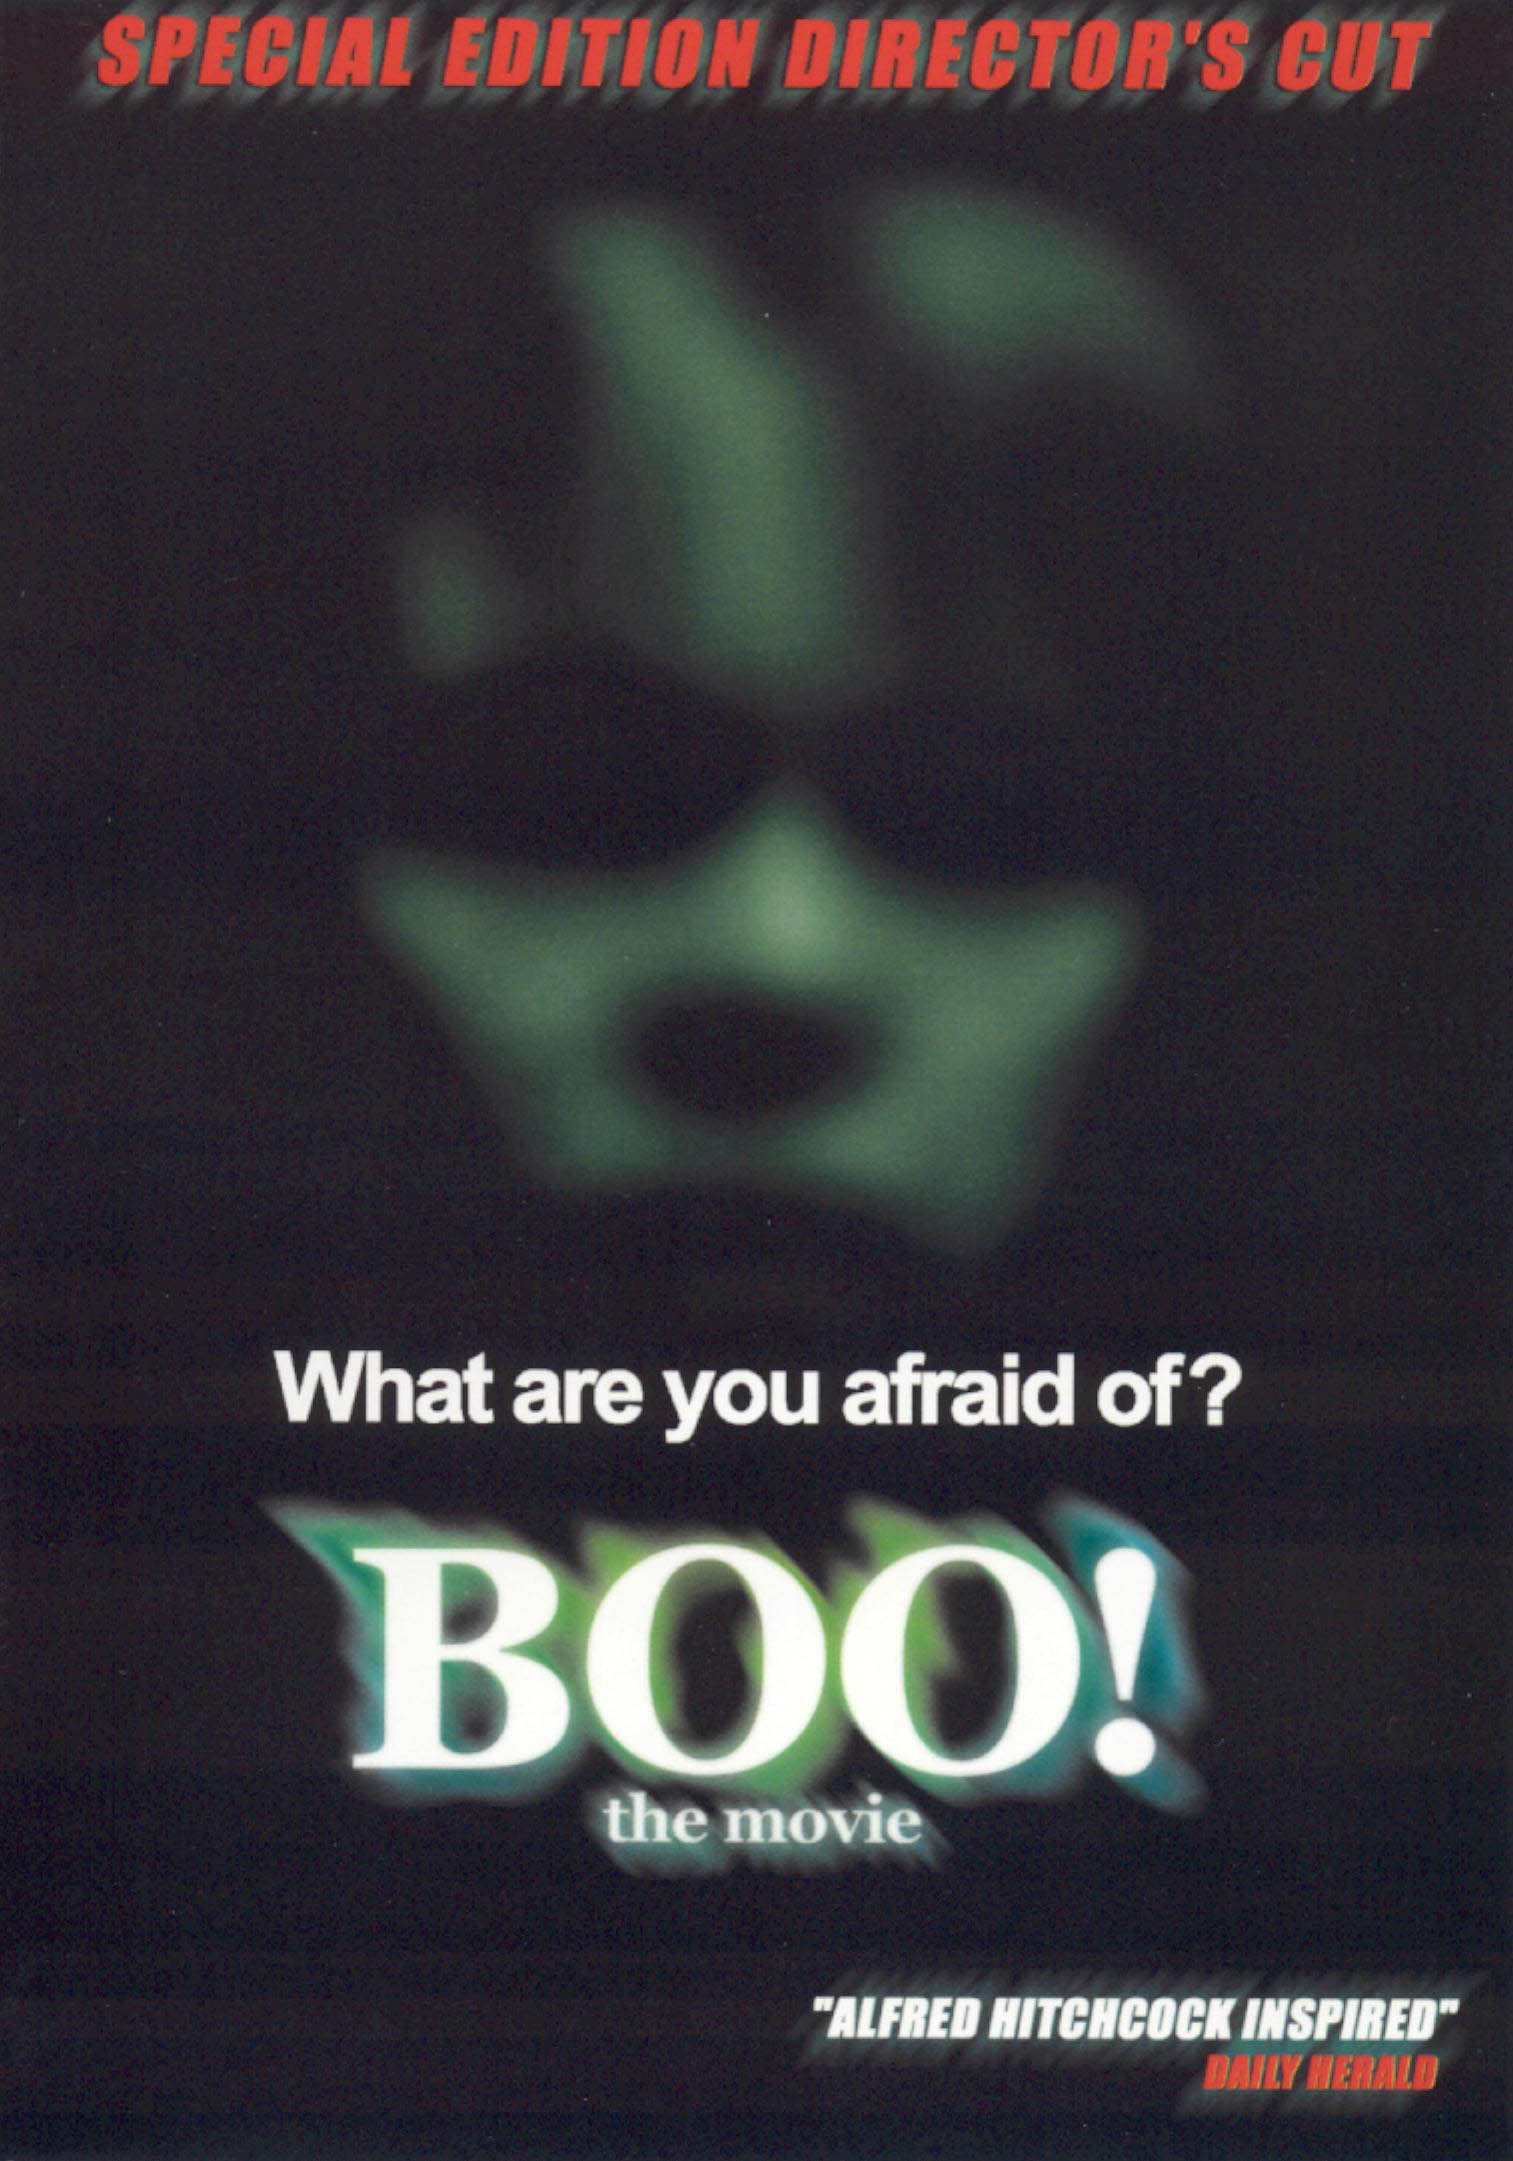 Boo! The Movie